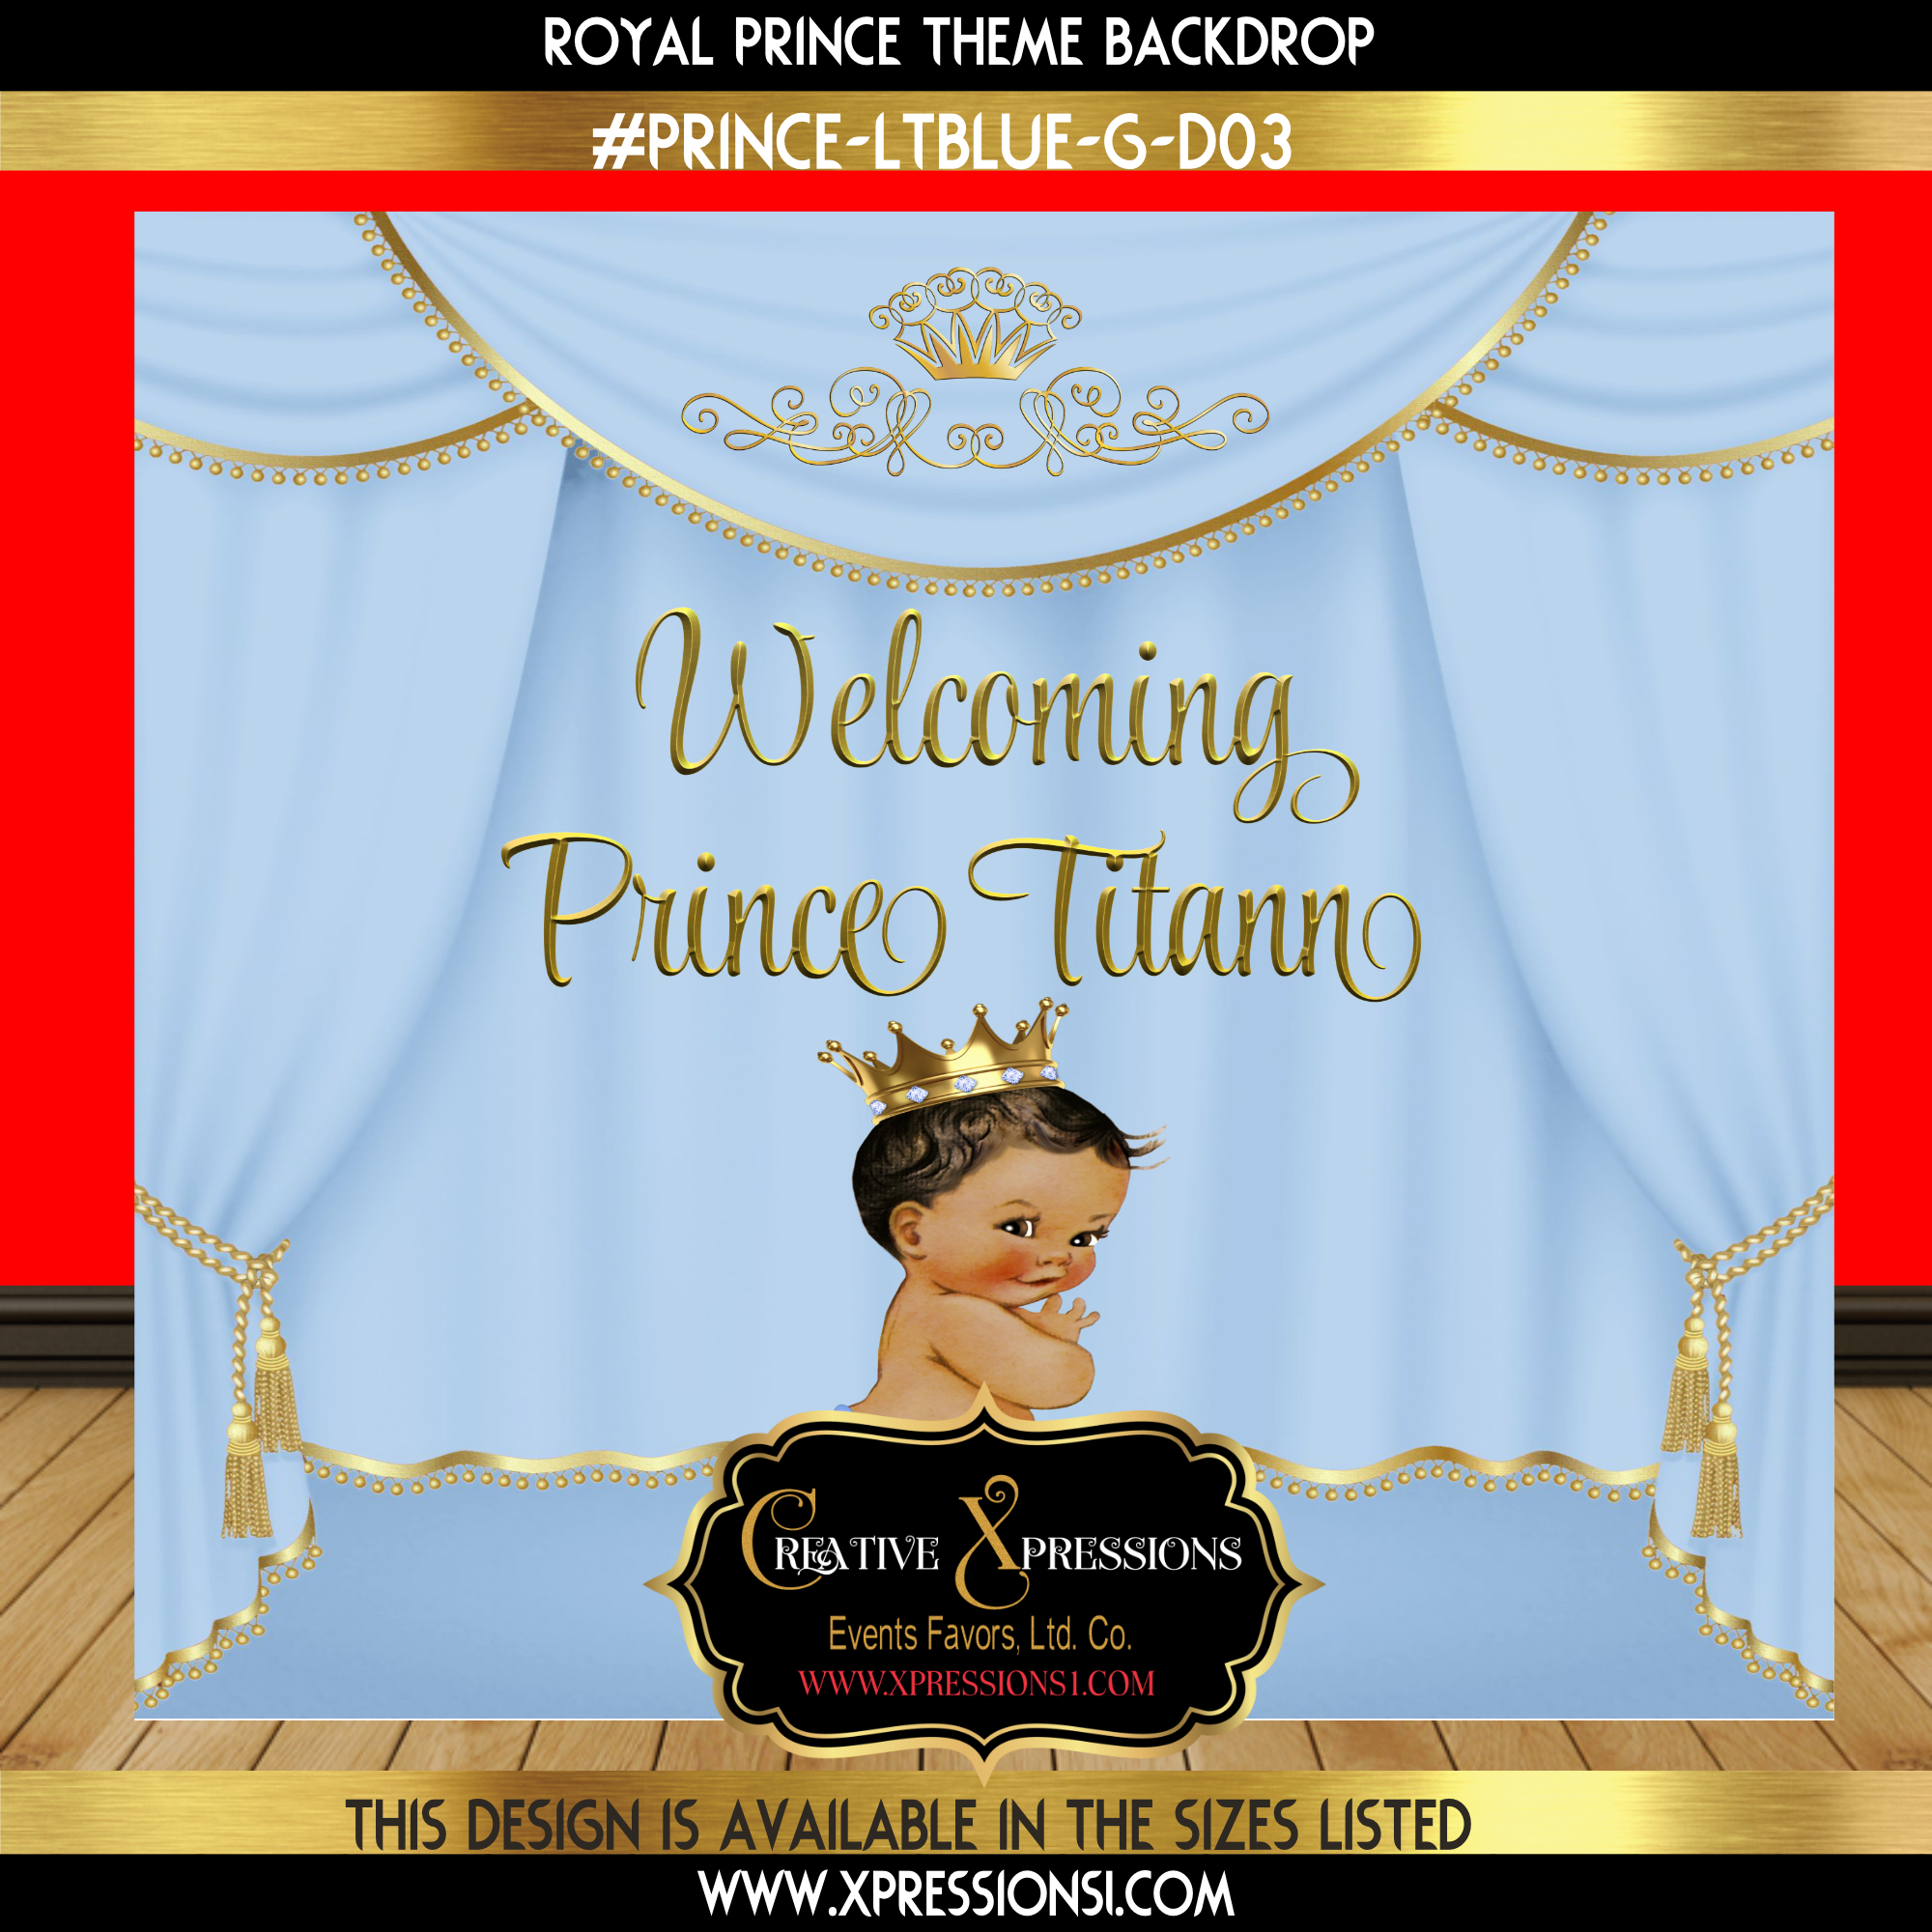 Royal Prince Baby Shower Backdrop